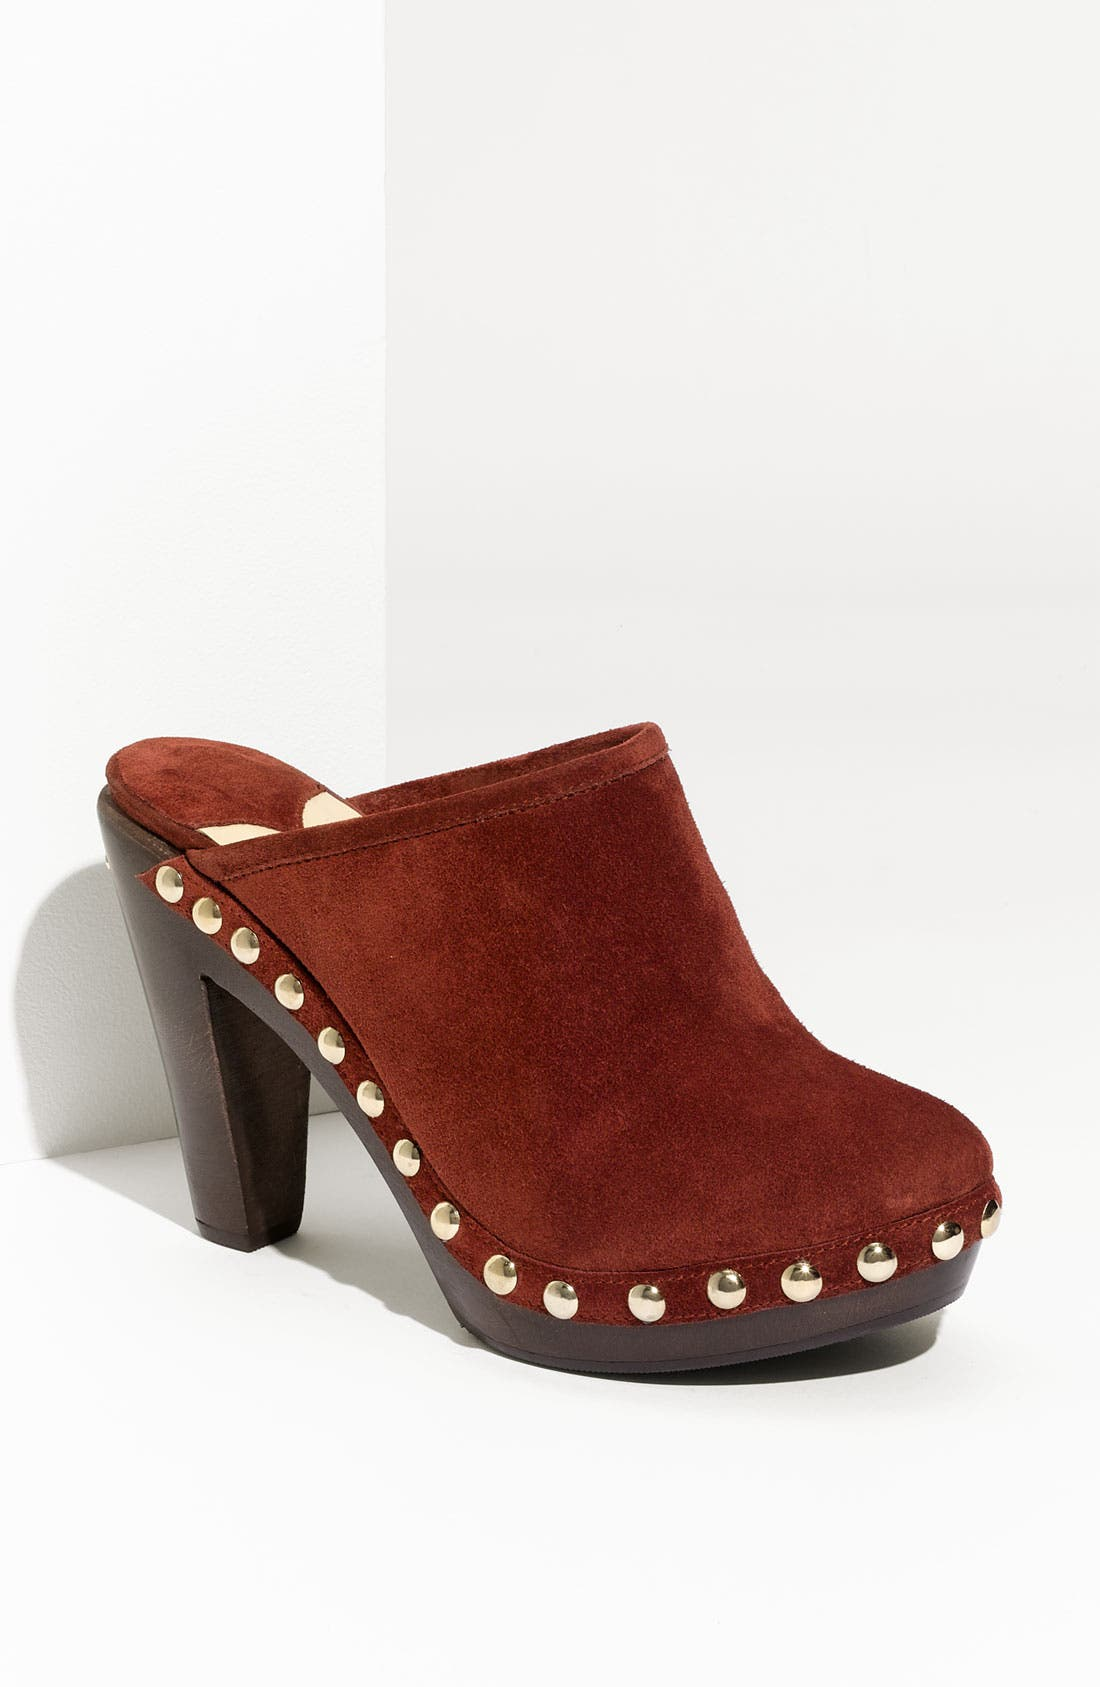 Main Image - Jimmy Choo 'Utmost' Clog